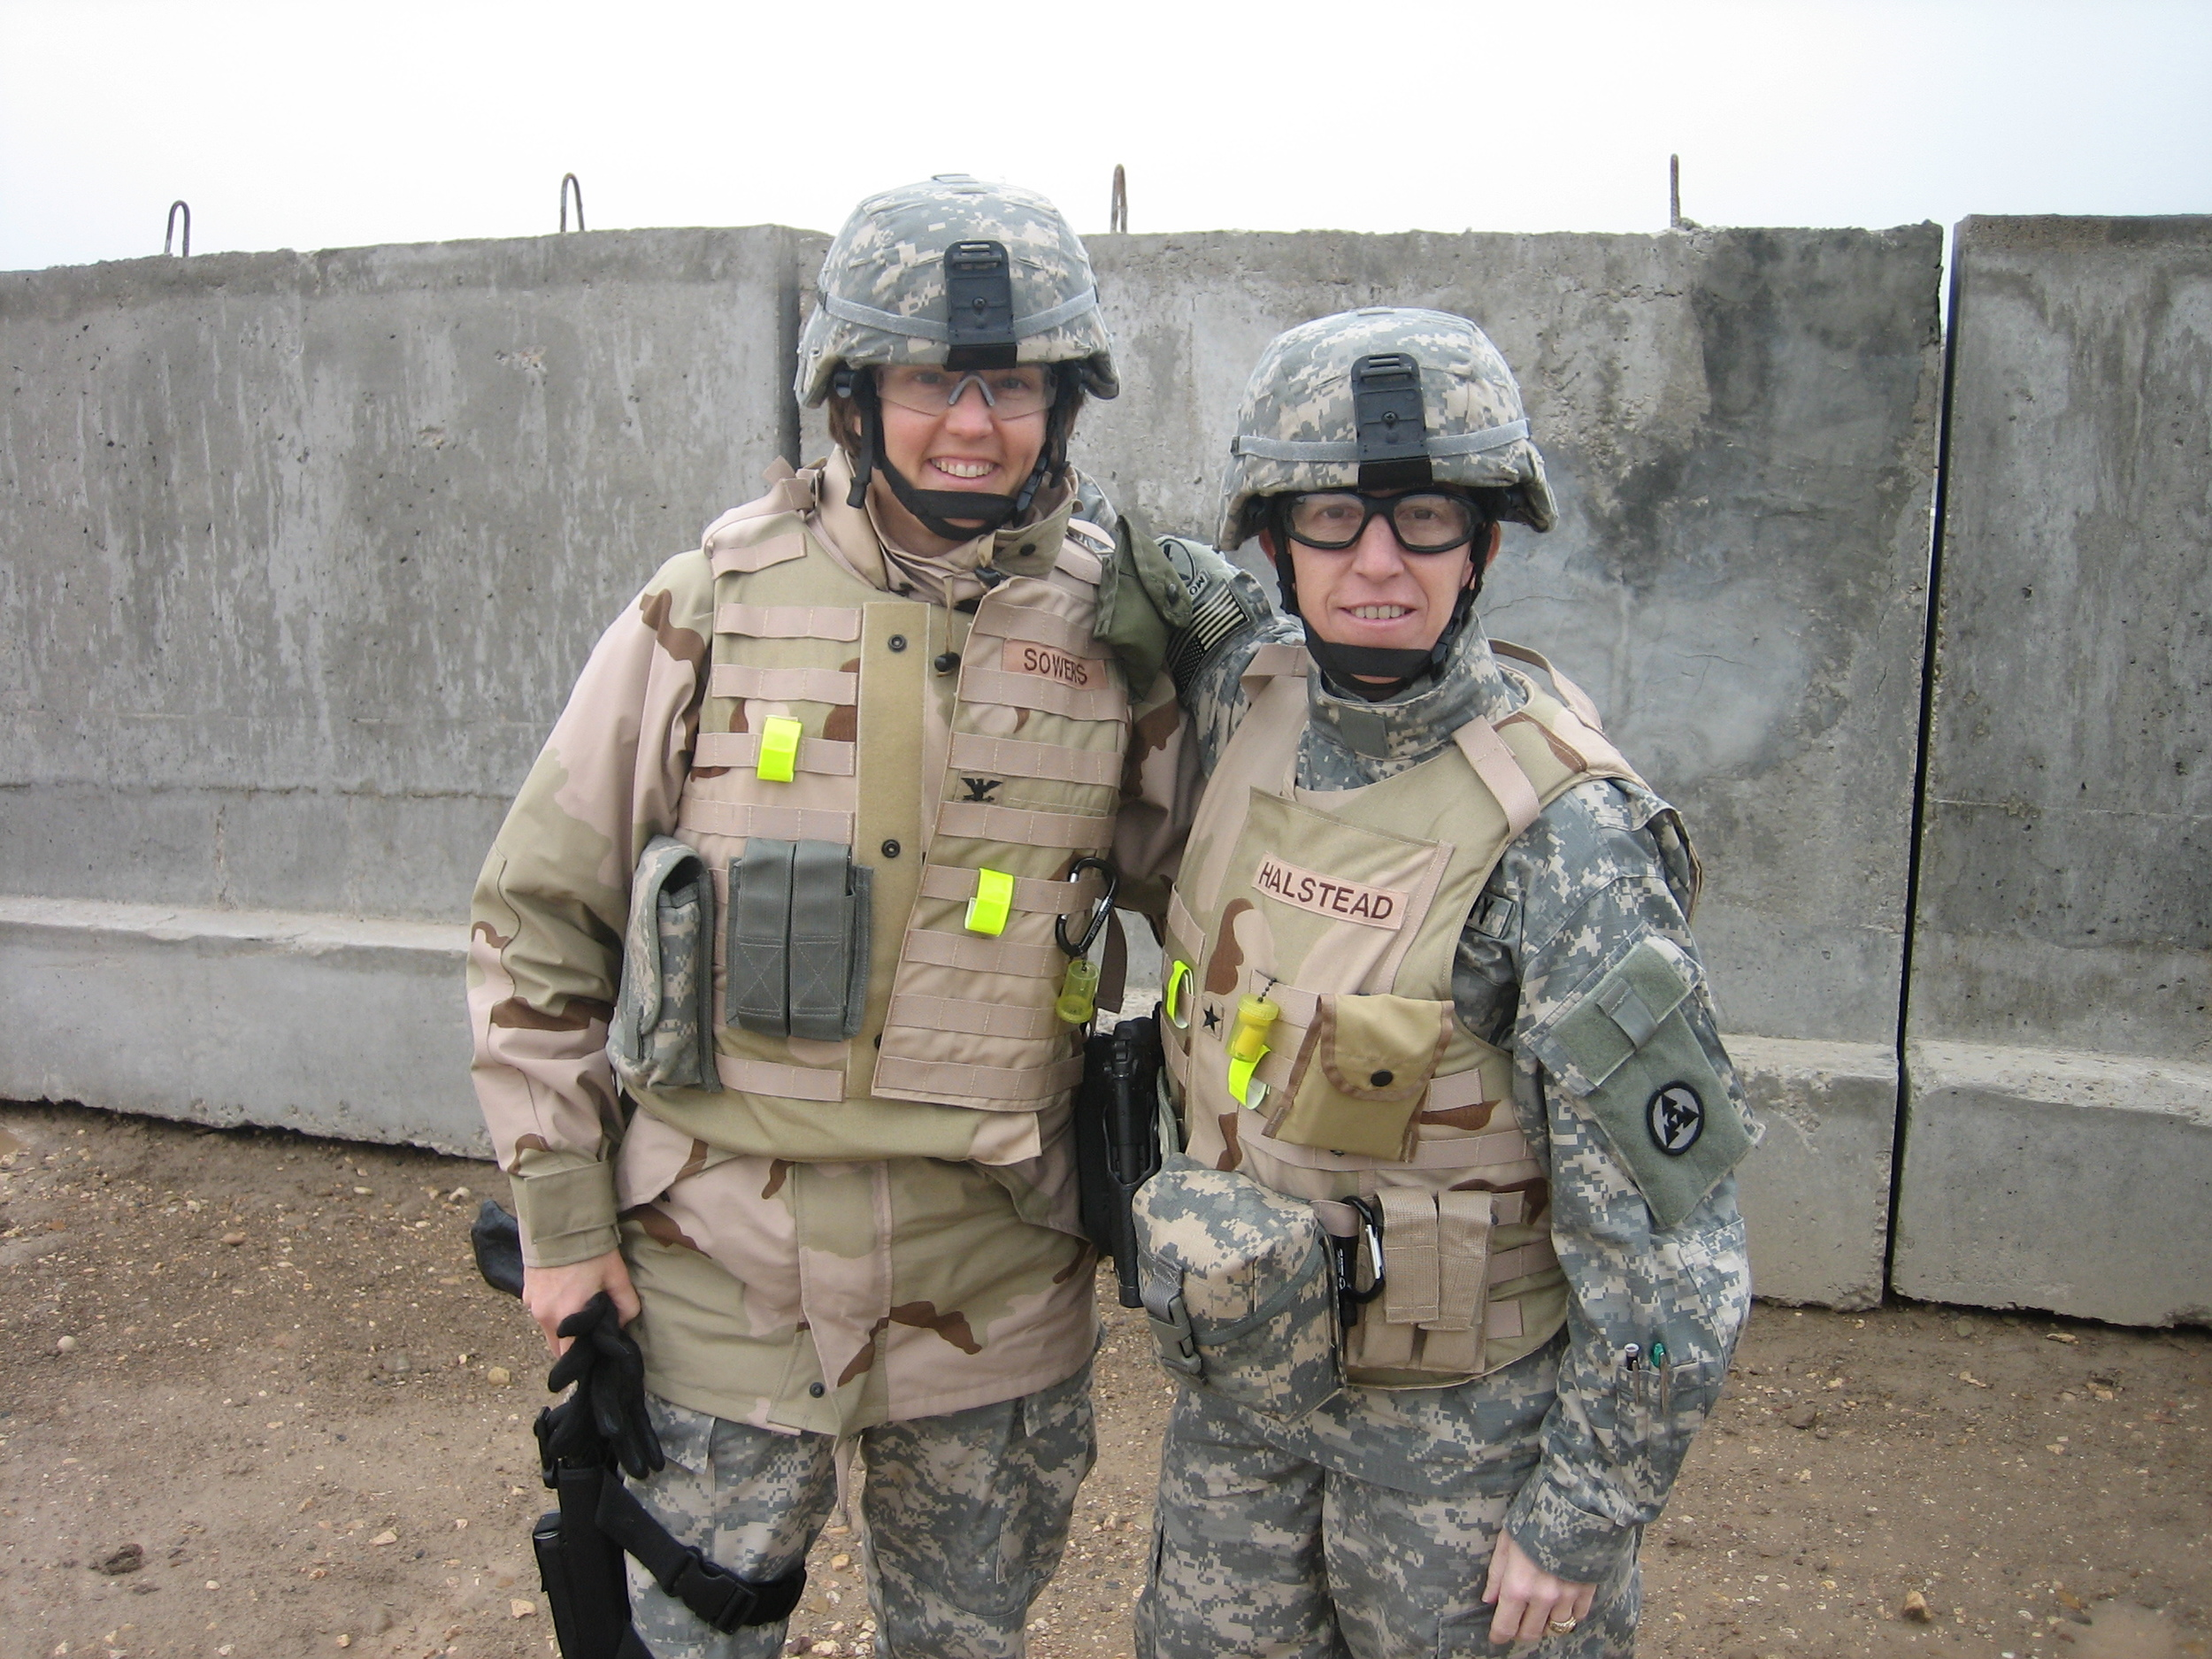 """Brigadier General Halstead and her Chief of Staff, Colonel Sowers. While commanding in Iraq, Halstead's command team was all women. """"We never highlighted it until we got home,"""" she says. """"We grew up in the Army together. We were company commanders in the same battalion. I look forward to the day when people look at this picture and see camaraderie, not female camaraderie."""""""